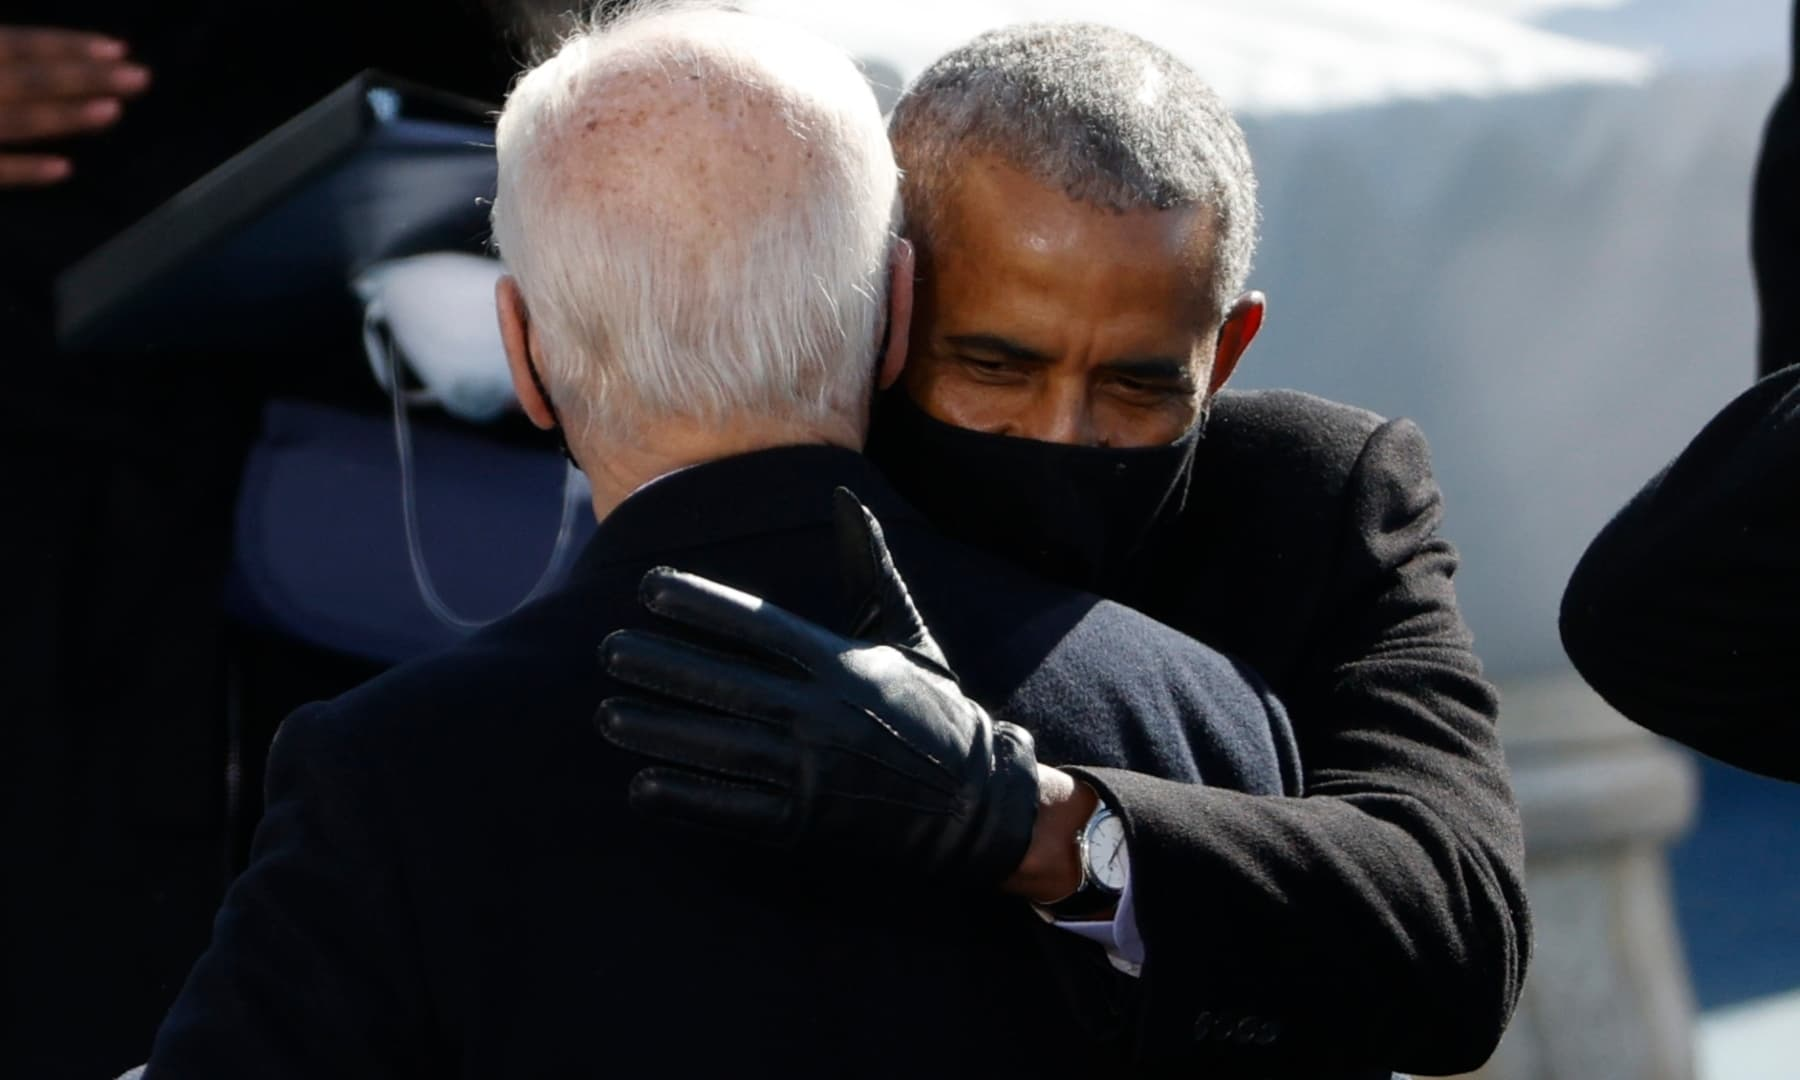 US President Joe Biden with former US president Barack Obama during the inauguration ceremony at the US Capitol in Washington. — Reuters